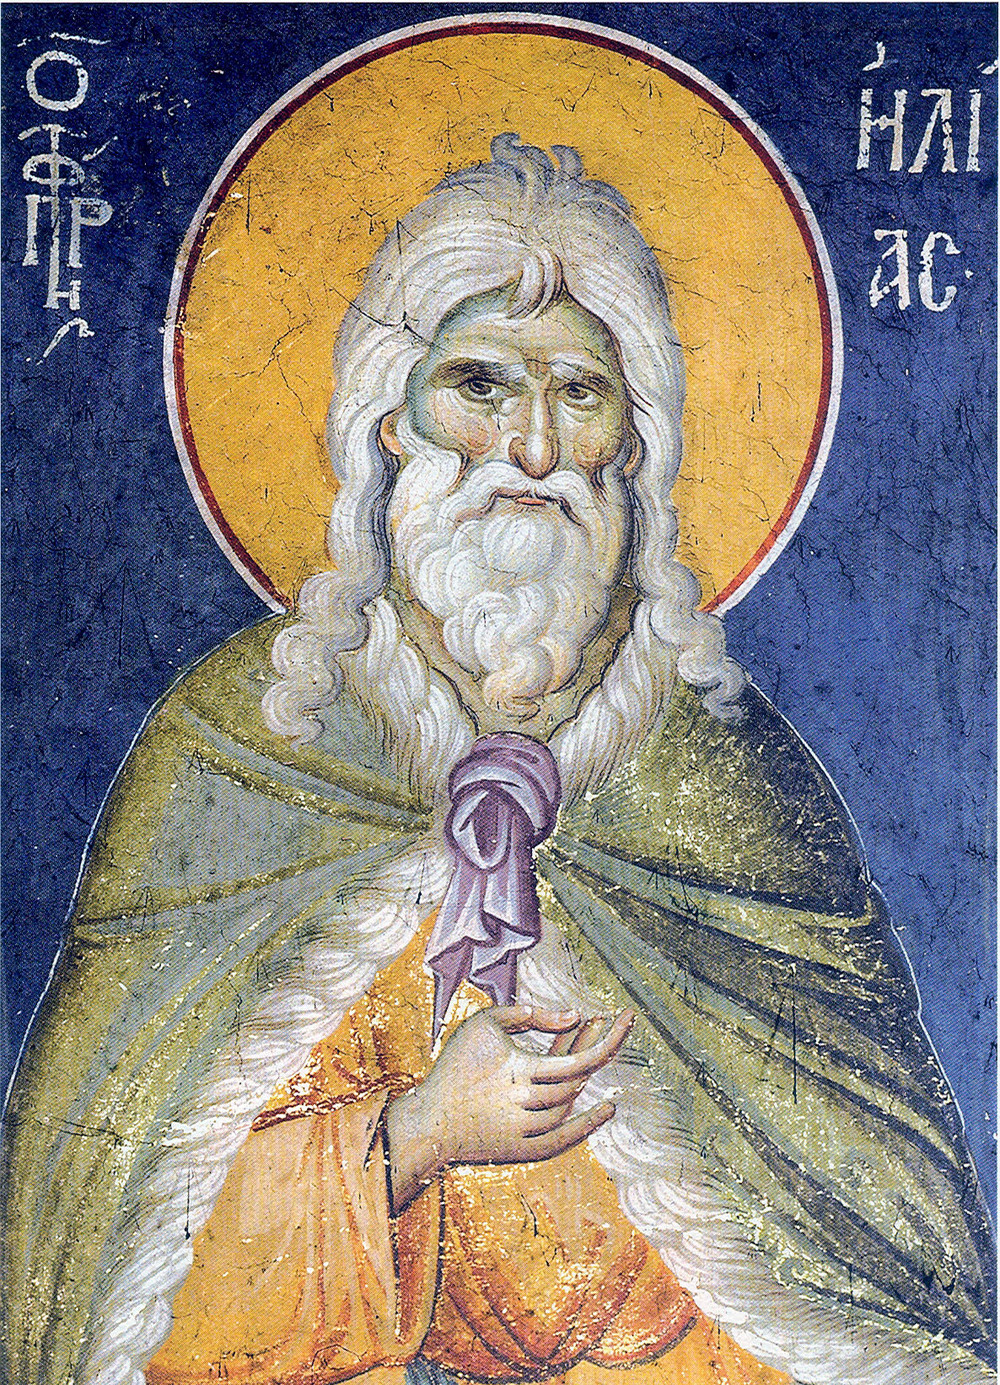 The Glorious Prophet Elias the Thesbite